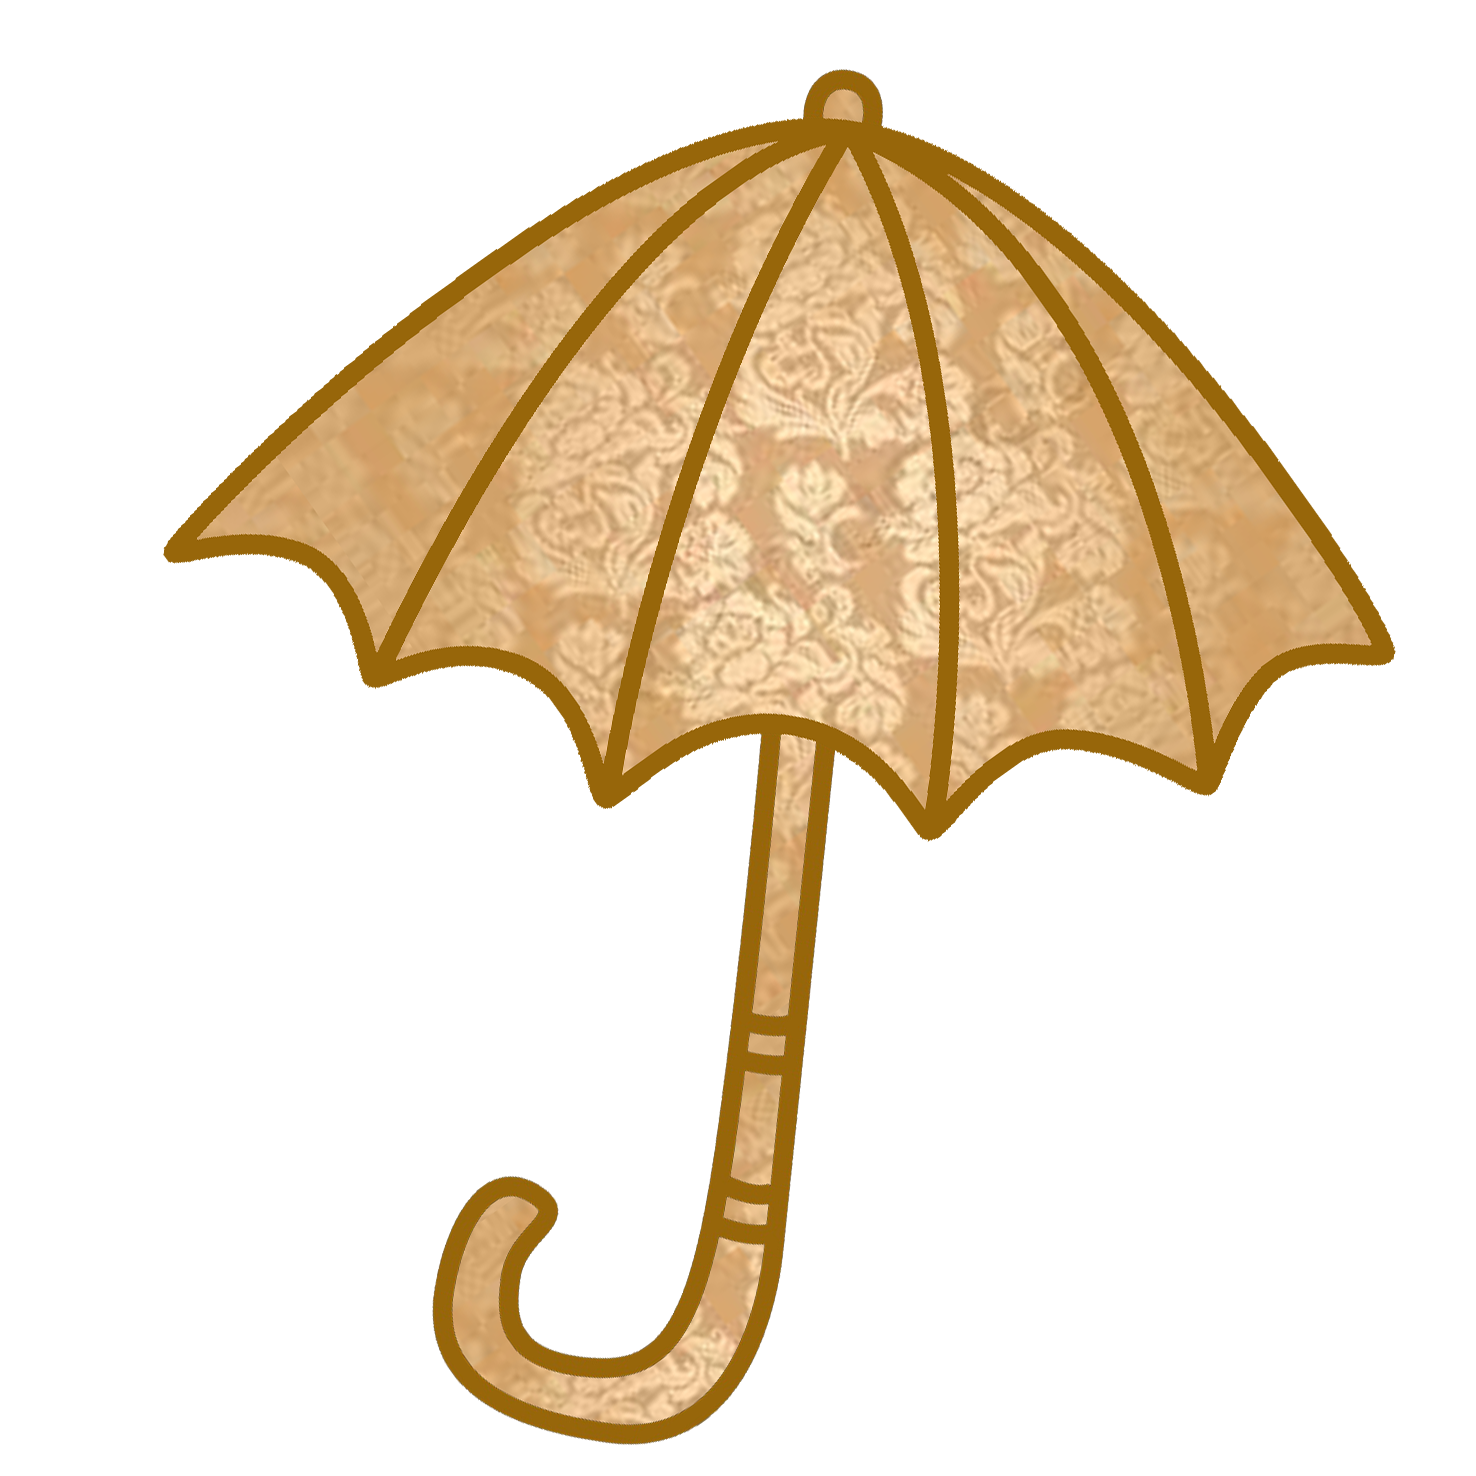 umbrella clipart with golden pattern